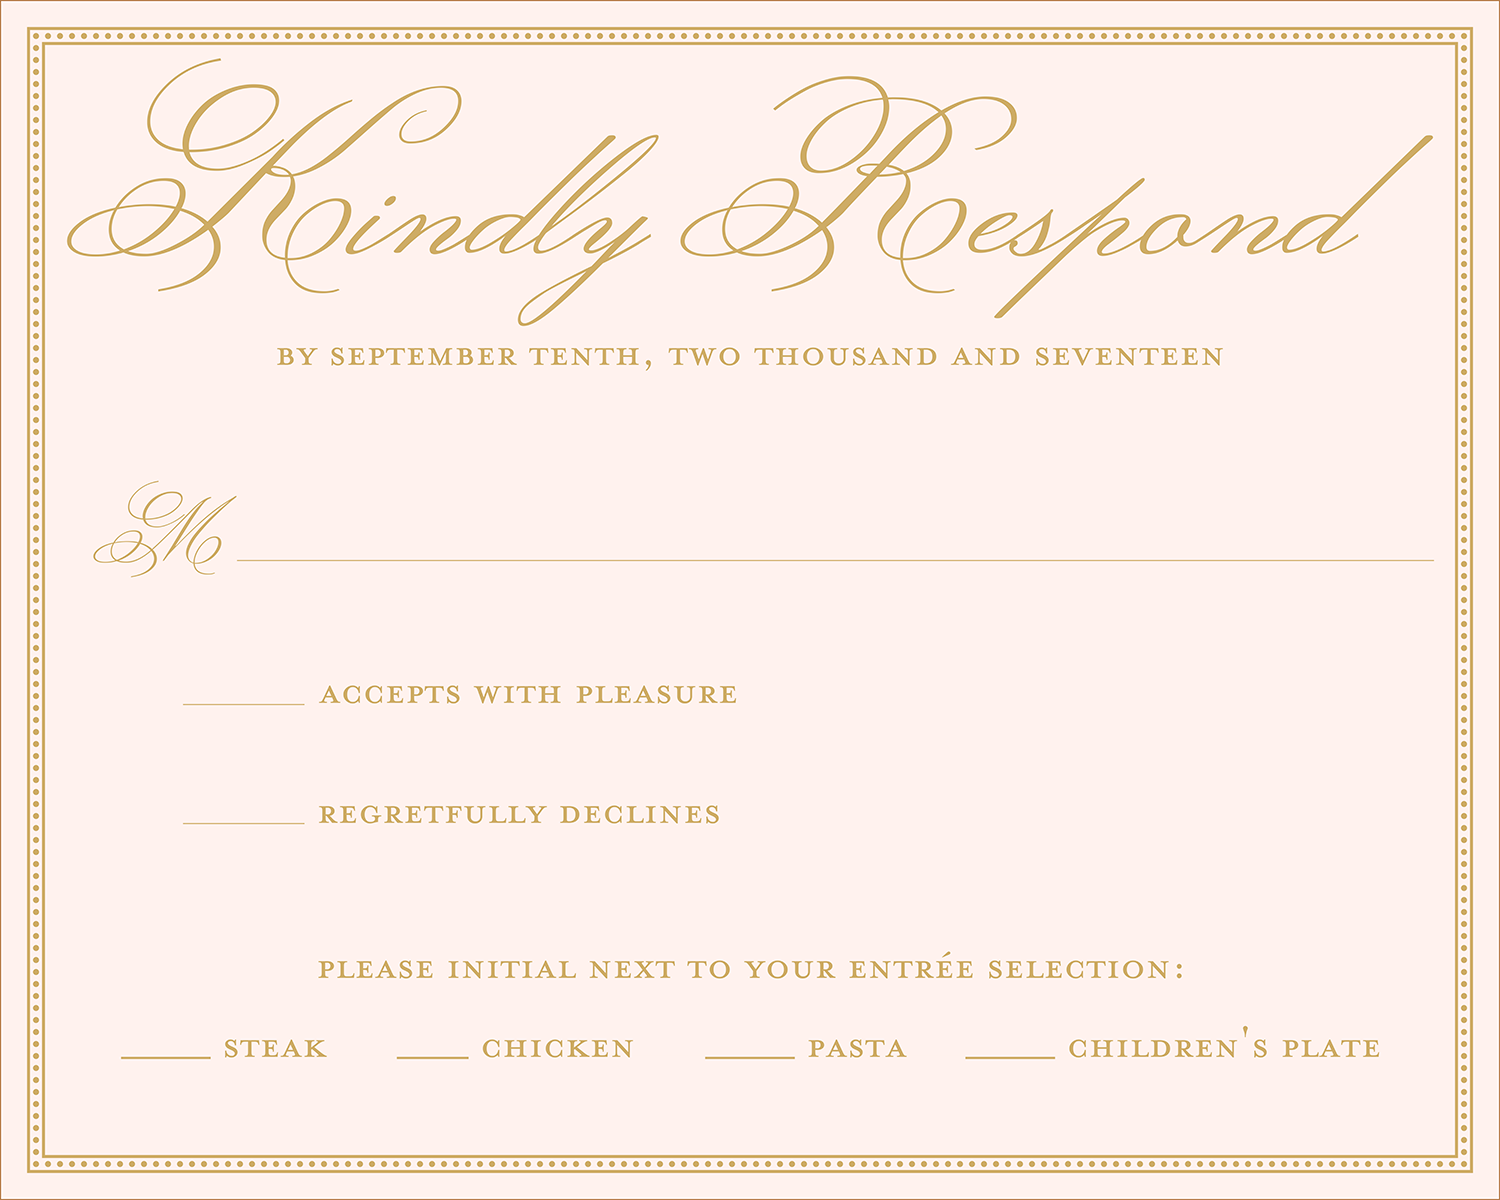 Wedding rsvp wording ideas for Wording for wedding invitations with rsvp